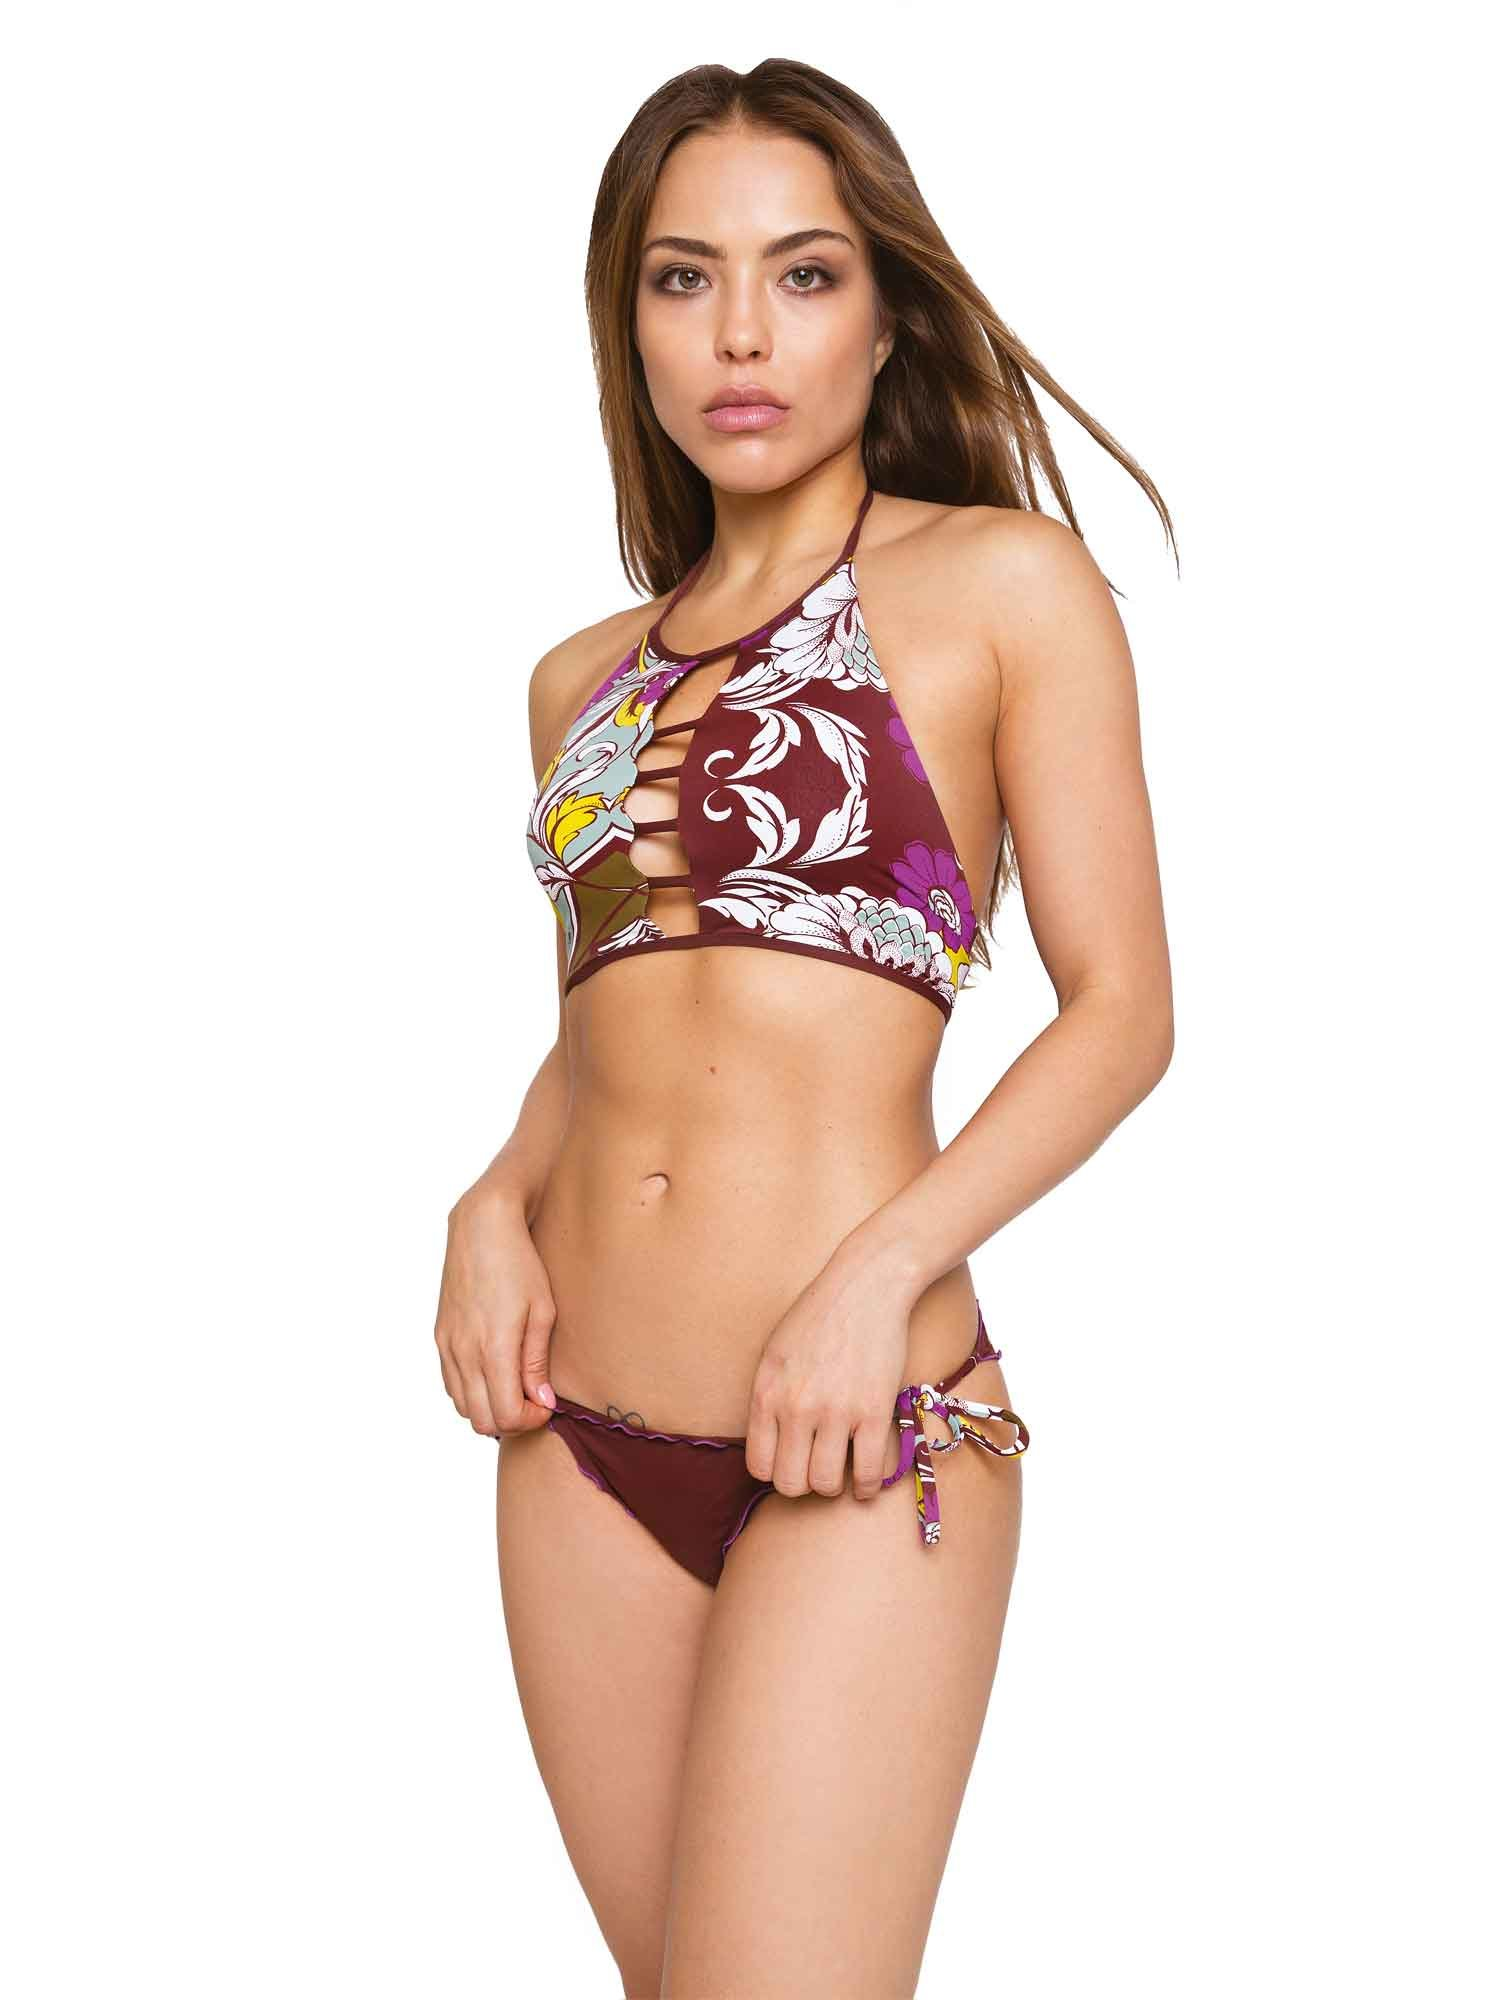 BIKINI TOP HANDKERCHES PRINTED AND PLAIN - Baar+Mima